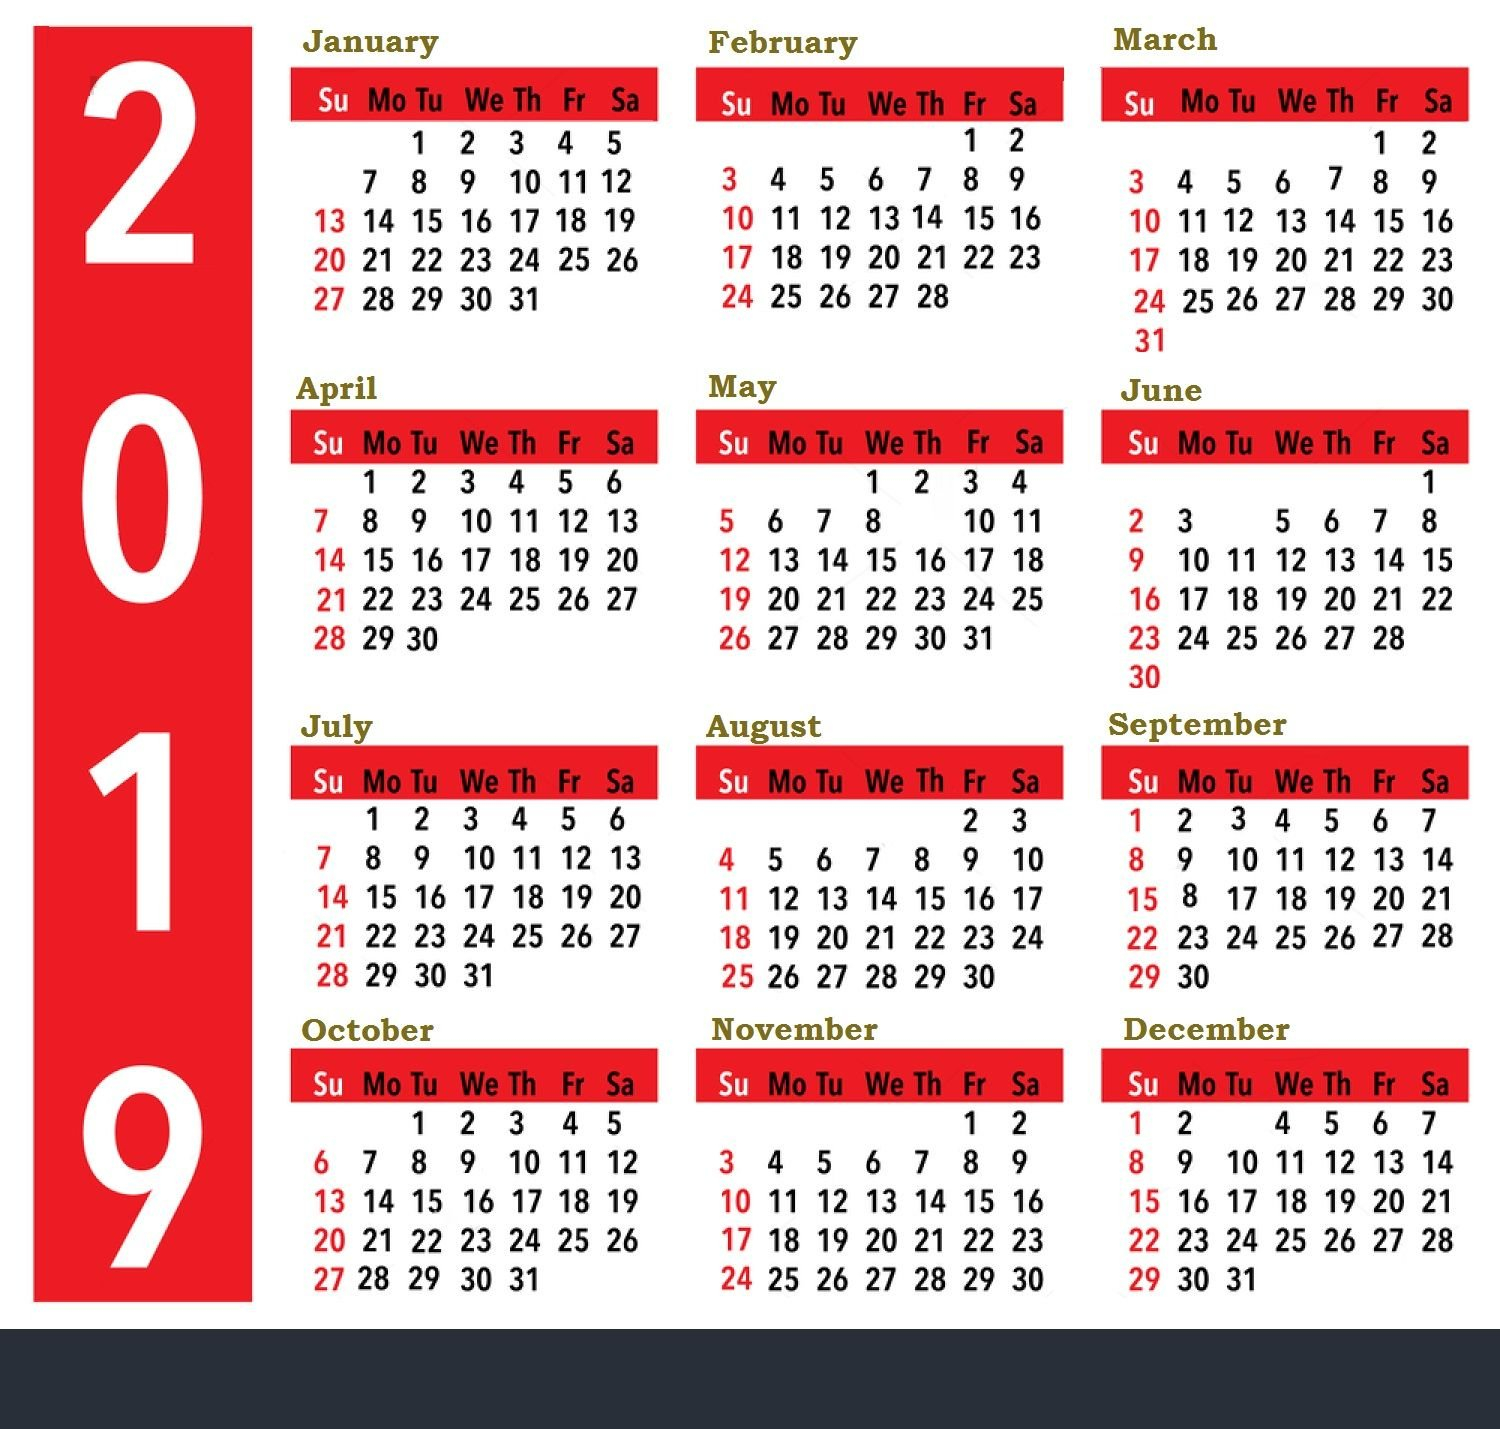 2019 Calendar For United States Holidays All Important Dates And Calendar 2019 List